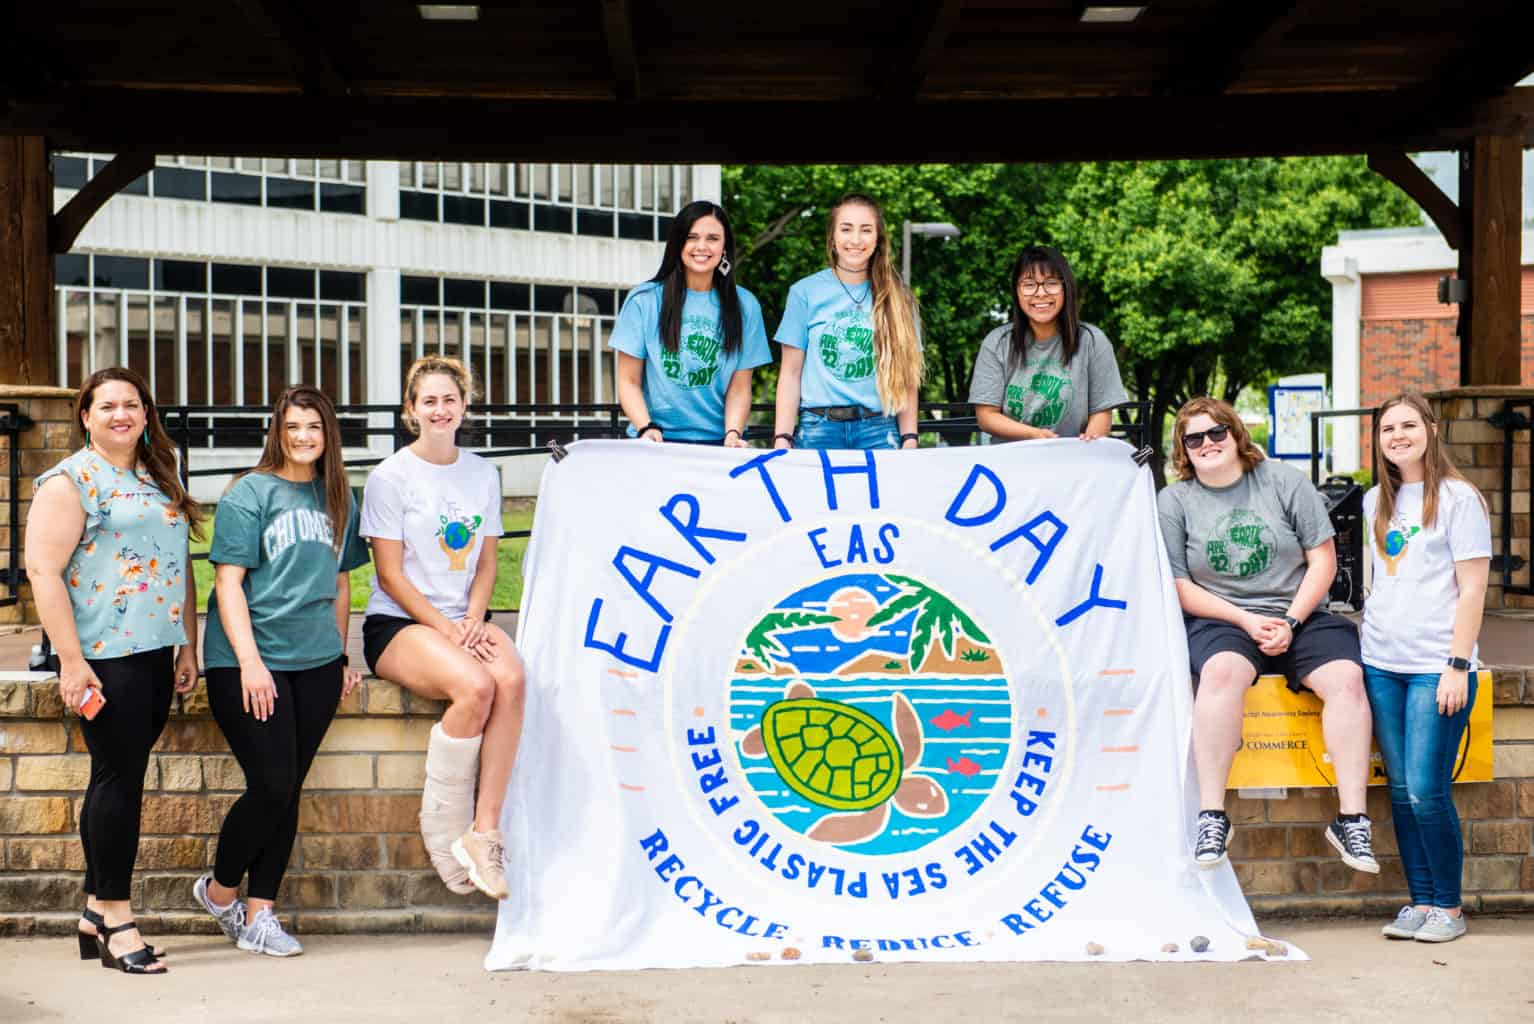 Environmental science students standing with poster